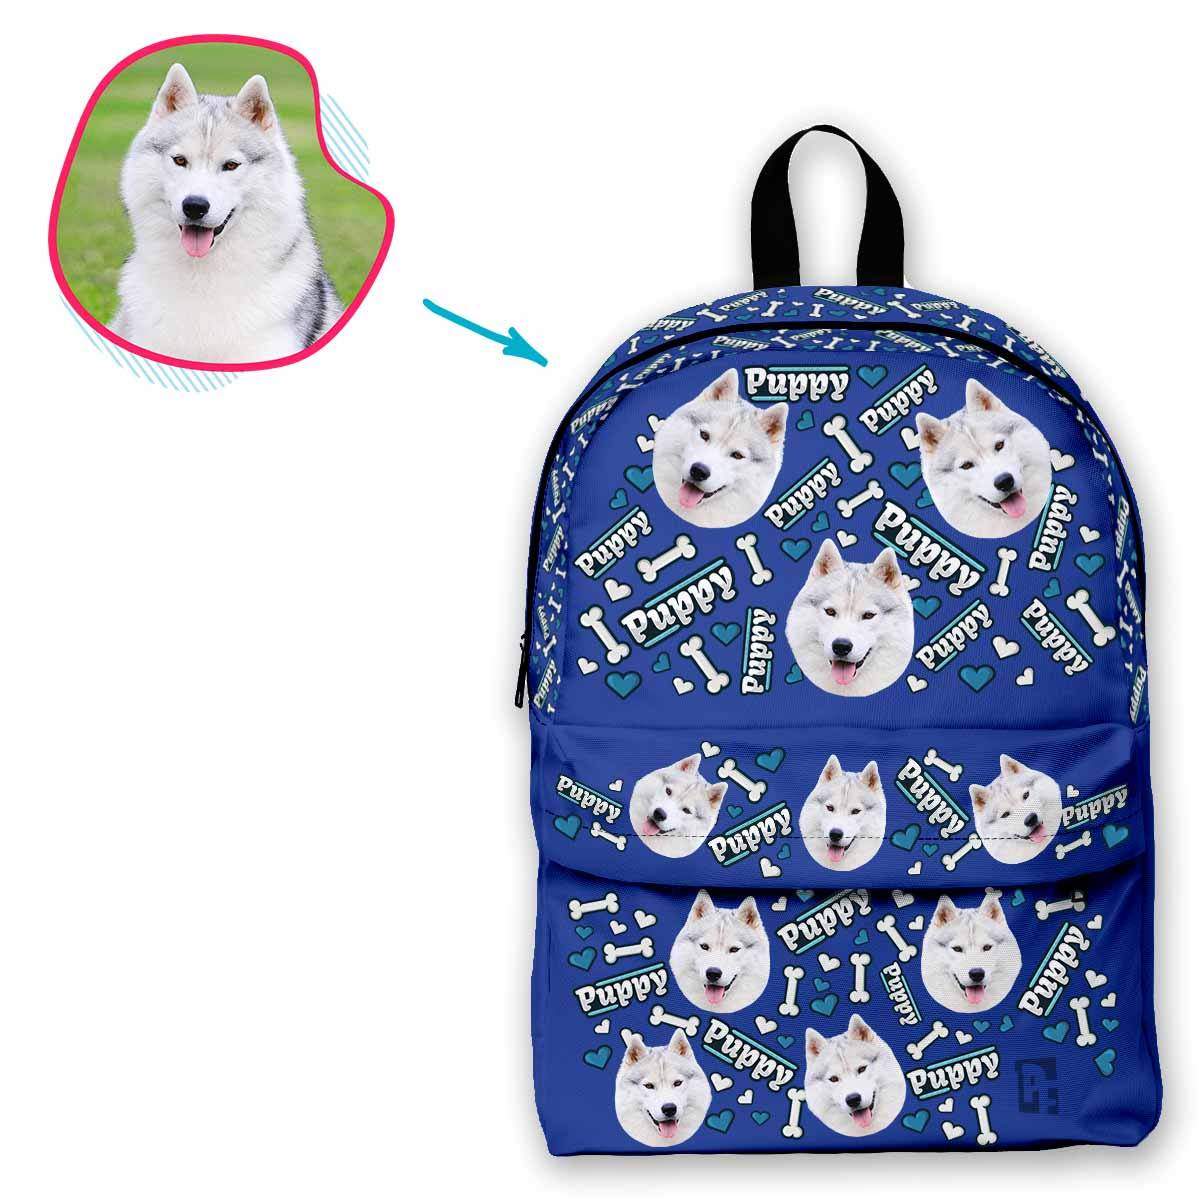 darkblue Puppy classic backpack personalized with photo of face printed on it